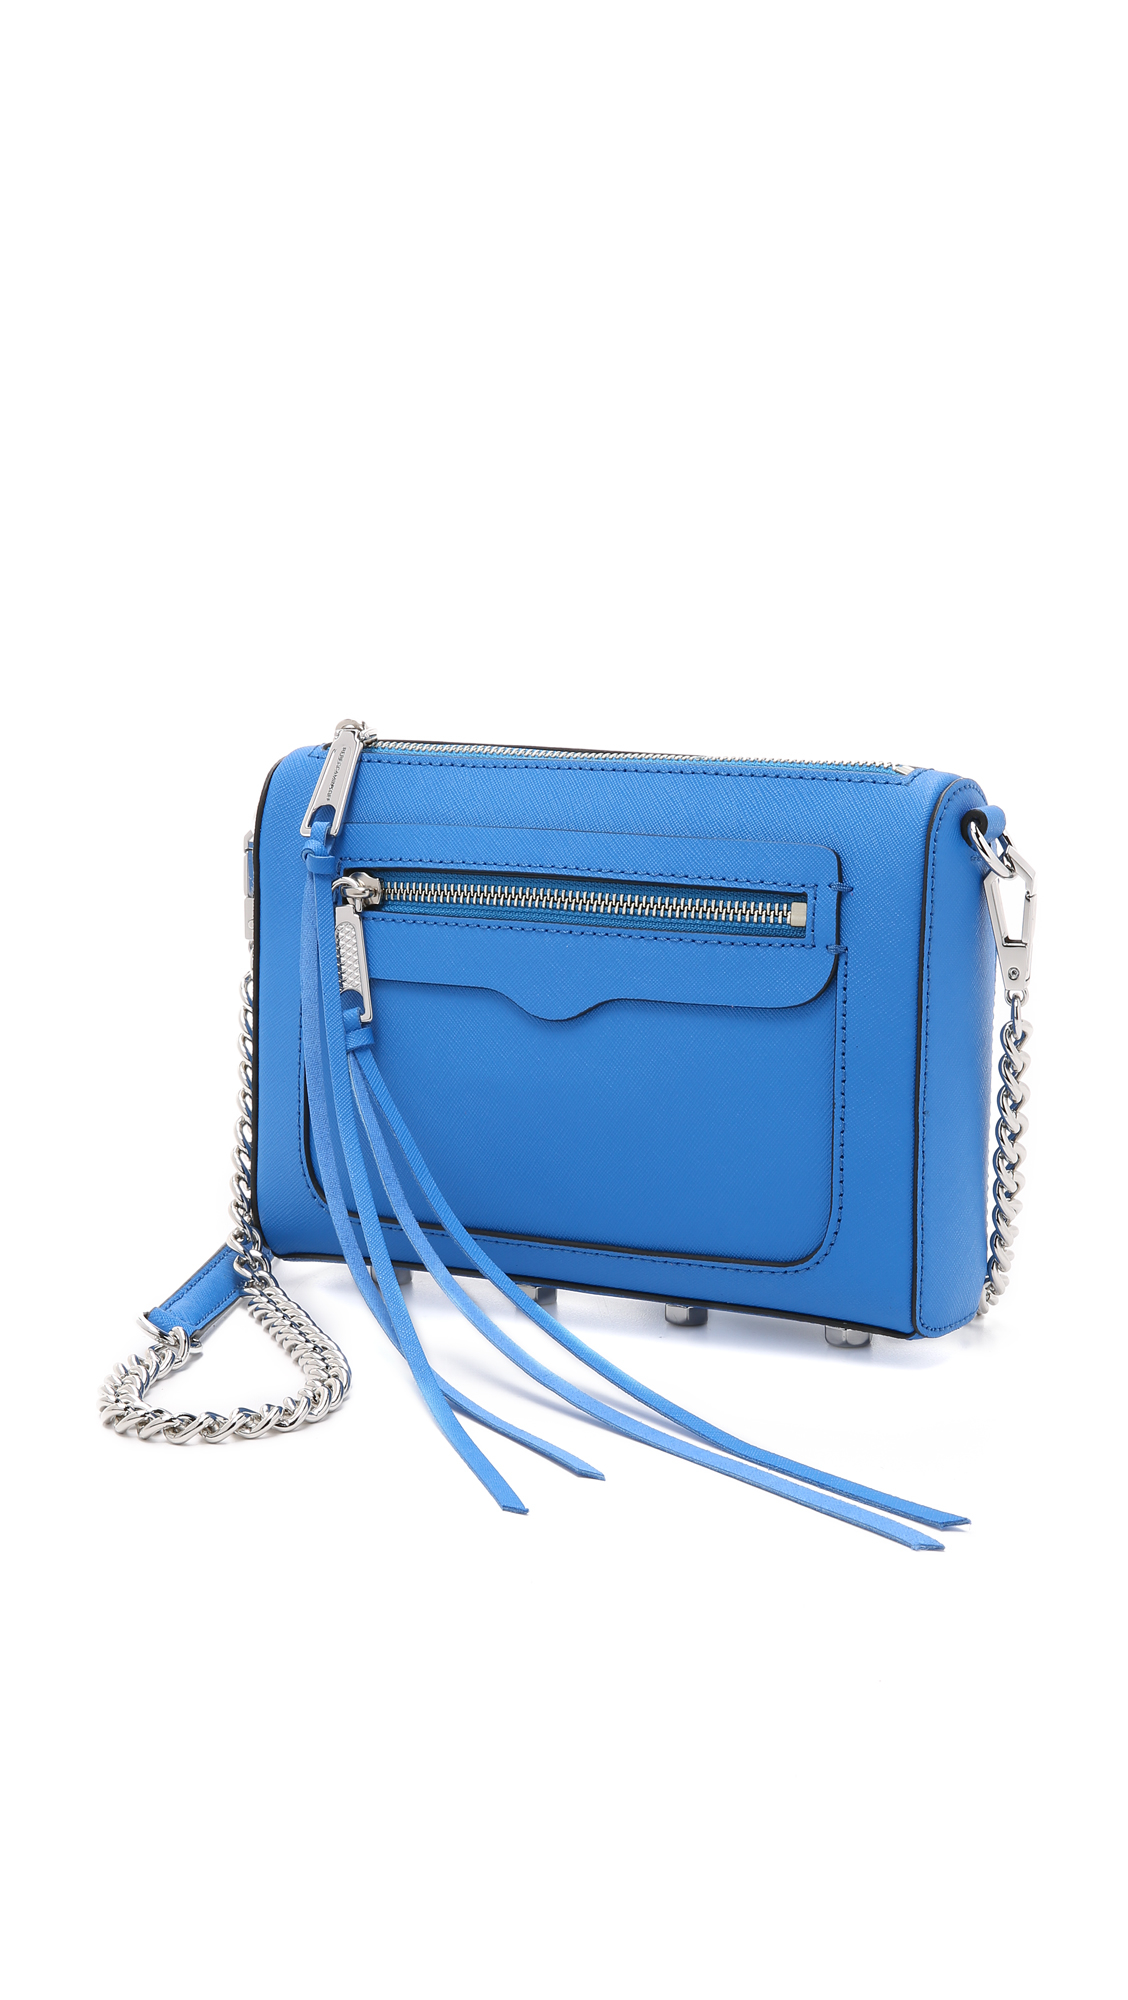 Rebecca Minkoff Avery Cross Body Bag - Grecian Blue